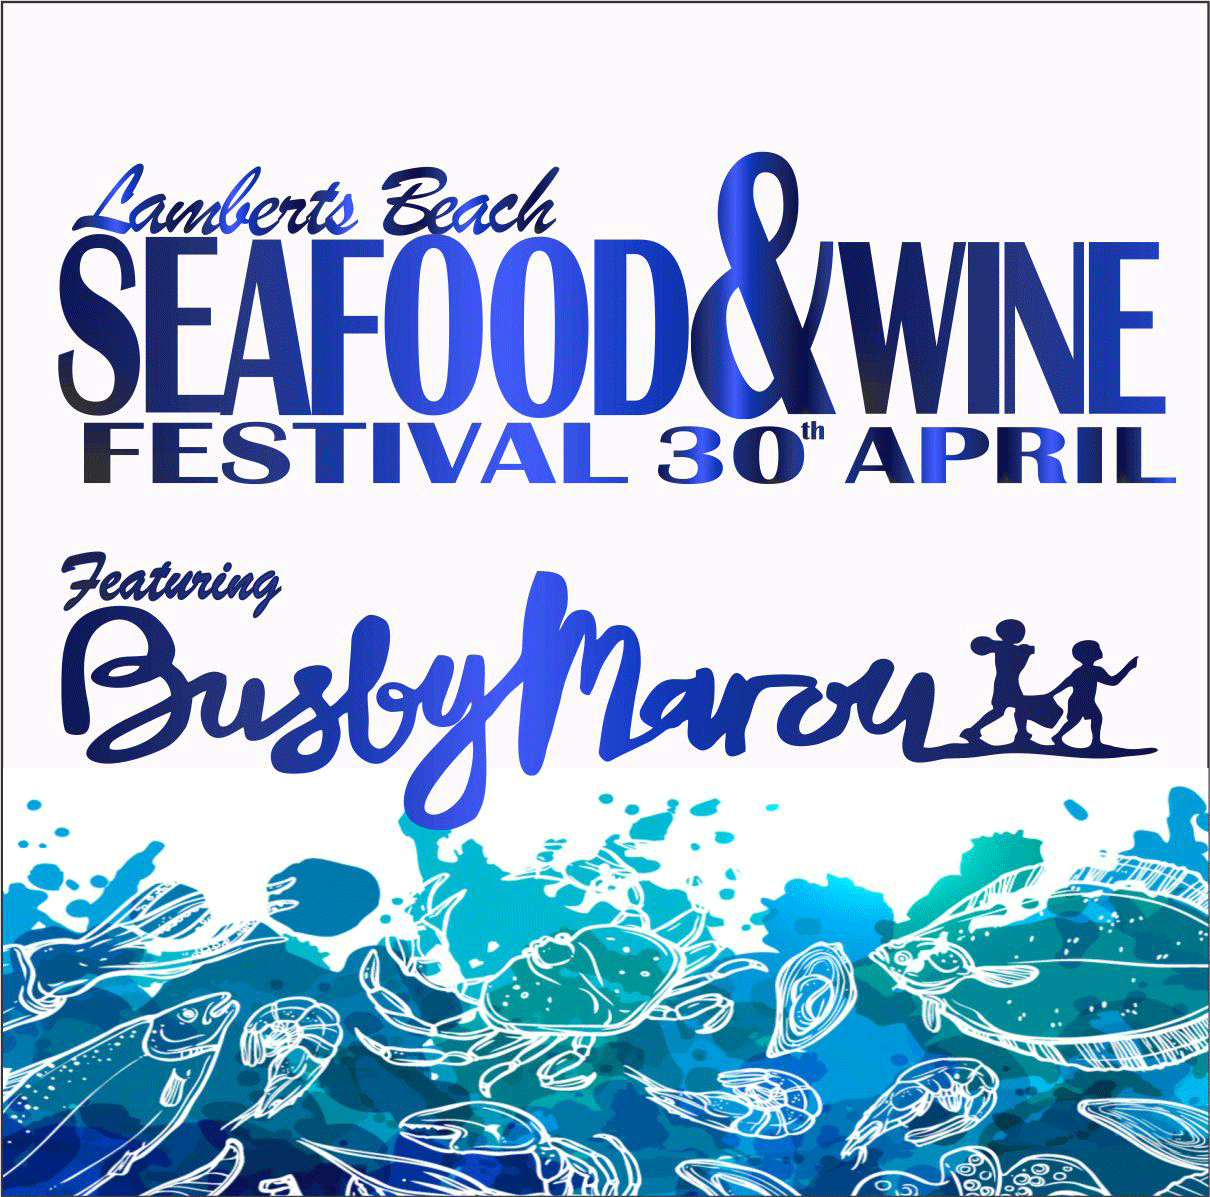 Tickets for Lamberts Beach Seafood & Wine Festival in Lamberts Beach, Mackay from Ticketbooth